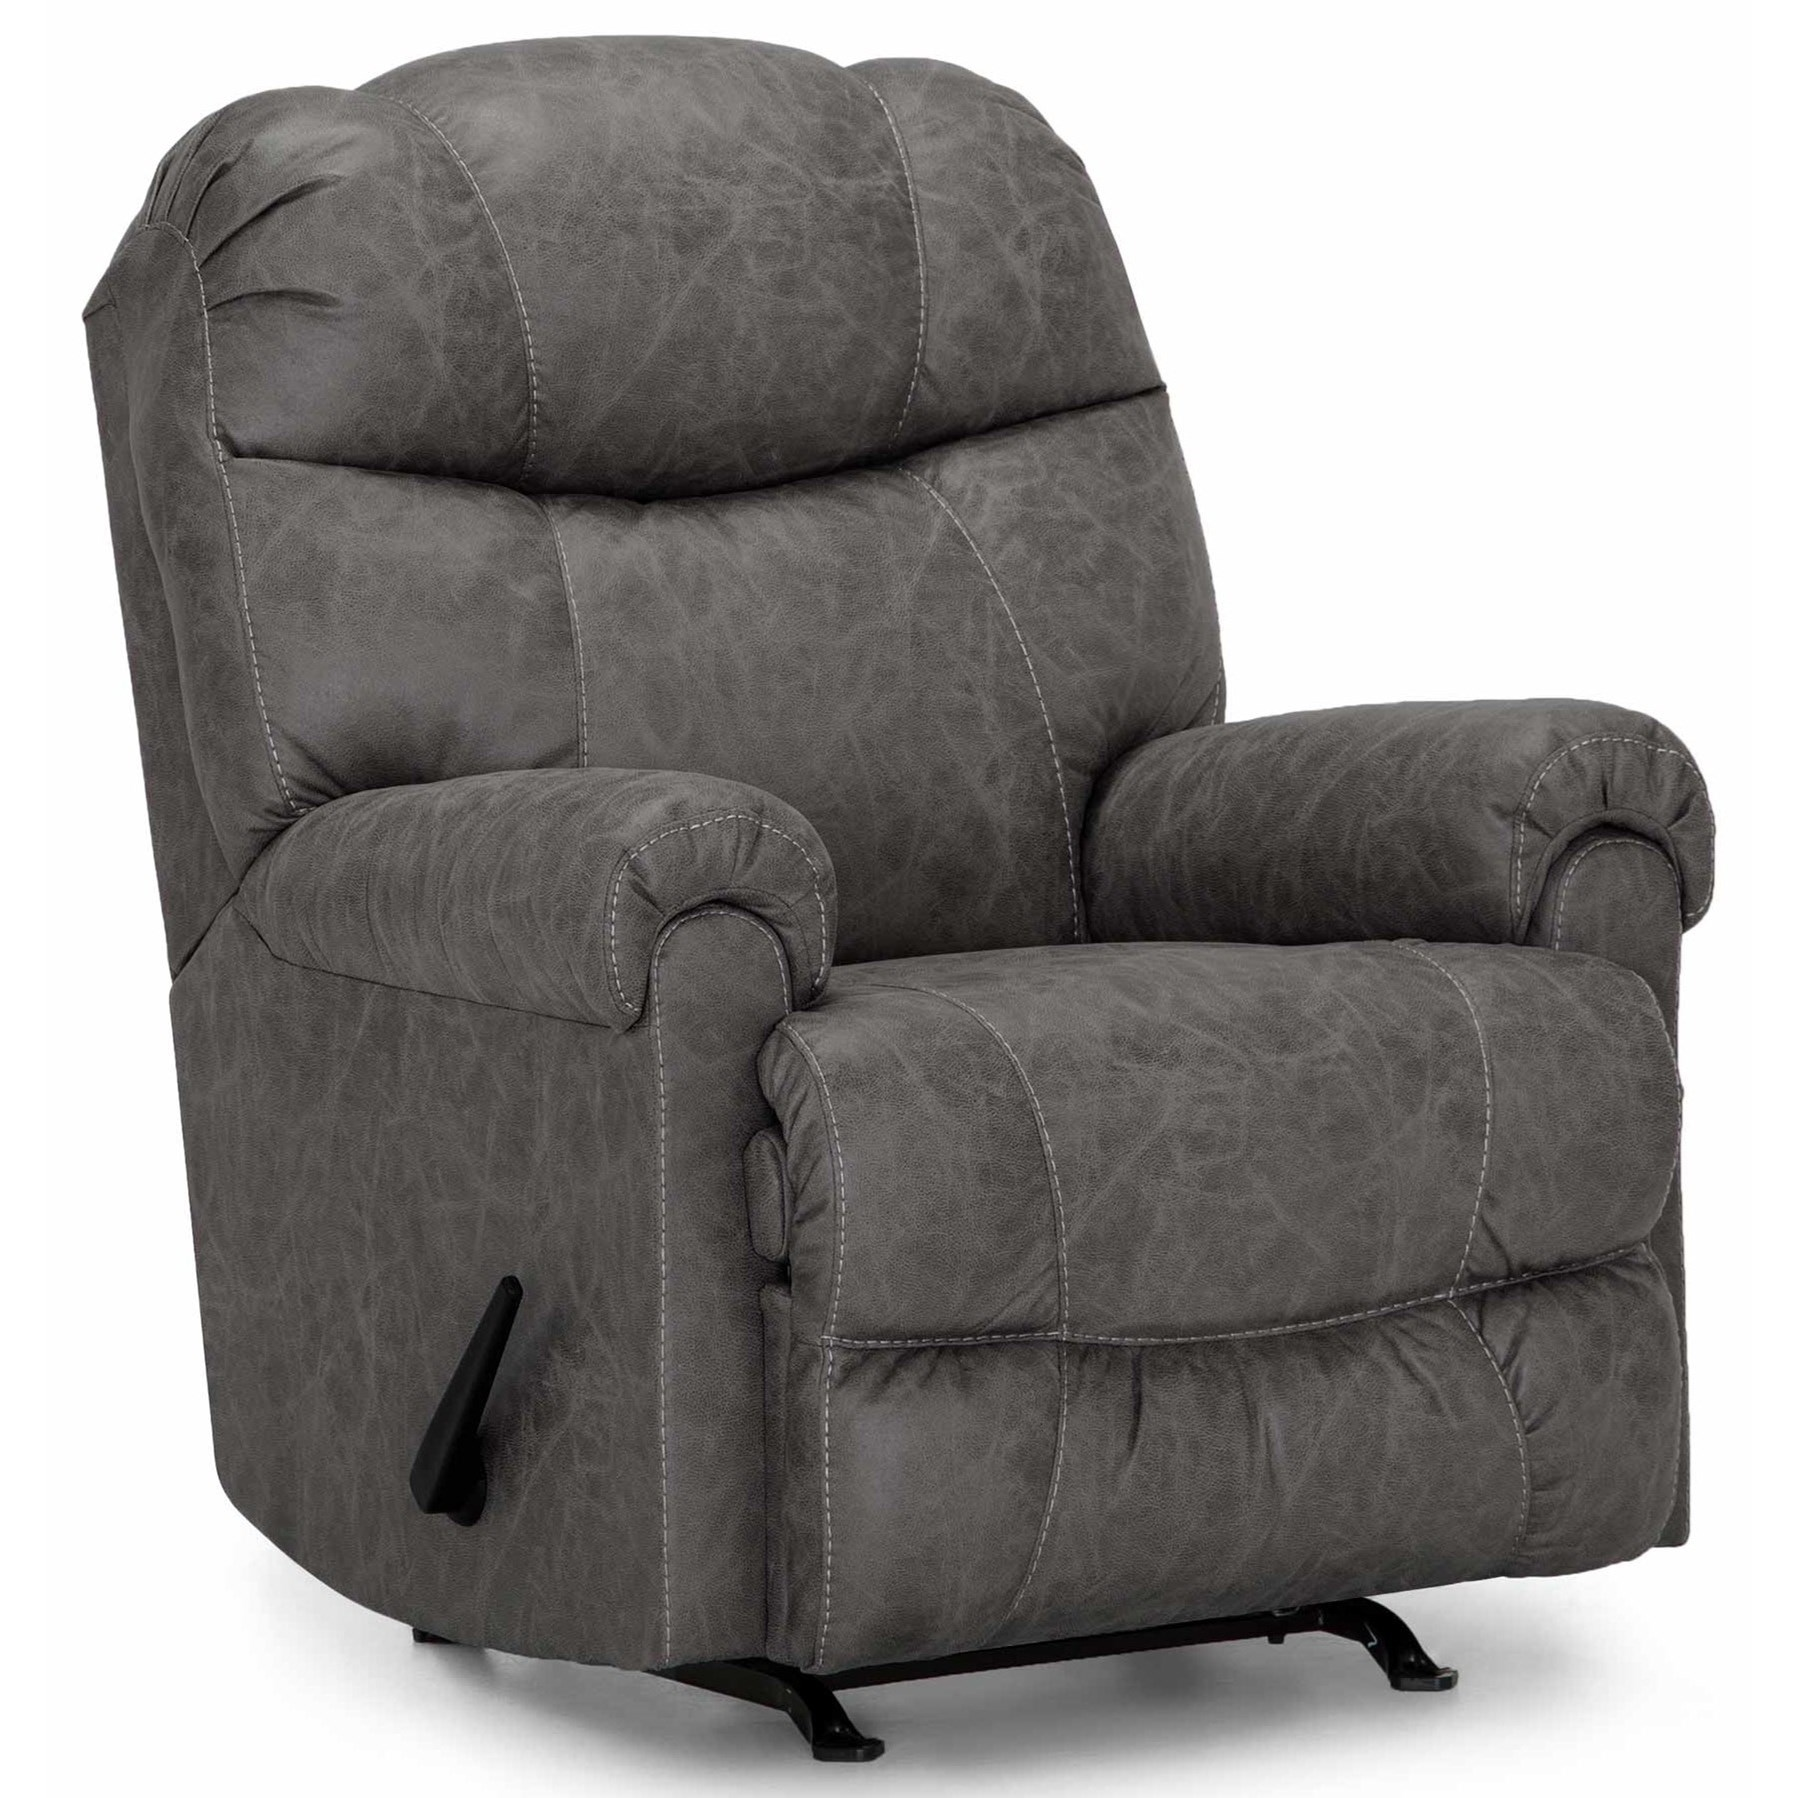 Franklin Recliners Recliner by Franklin at Darvin Furniture